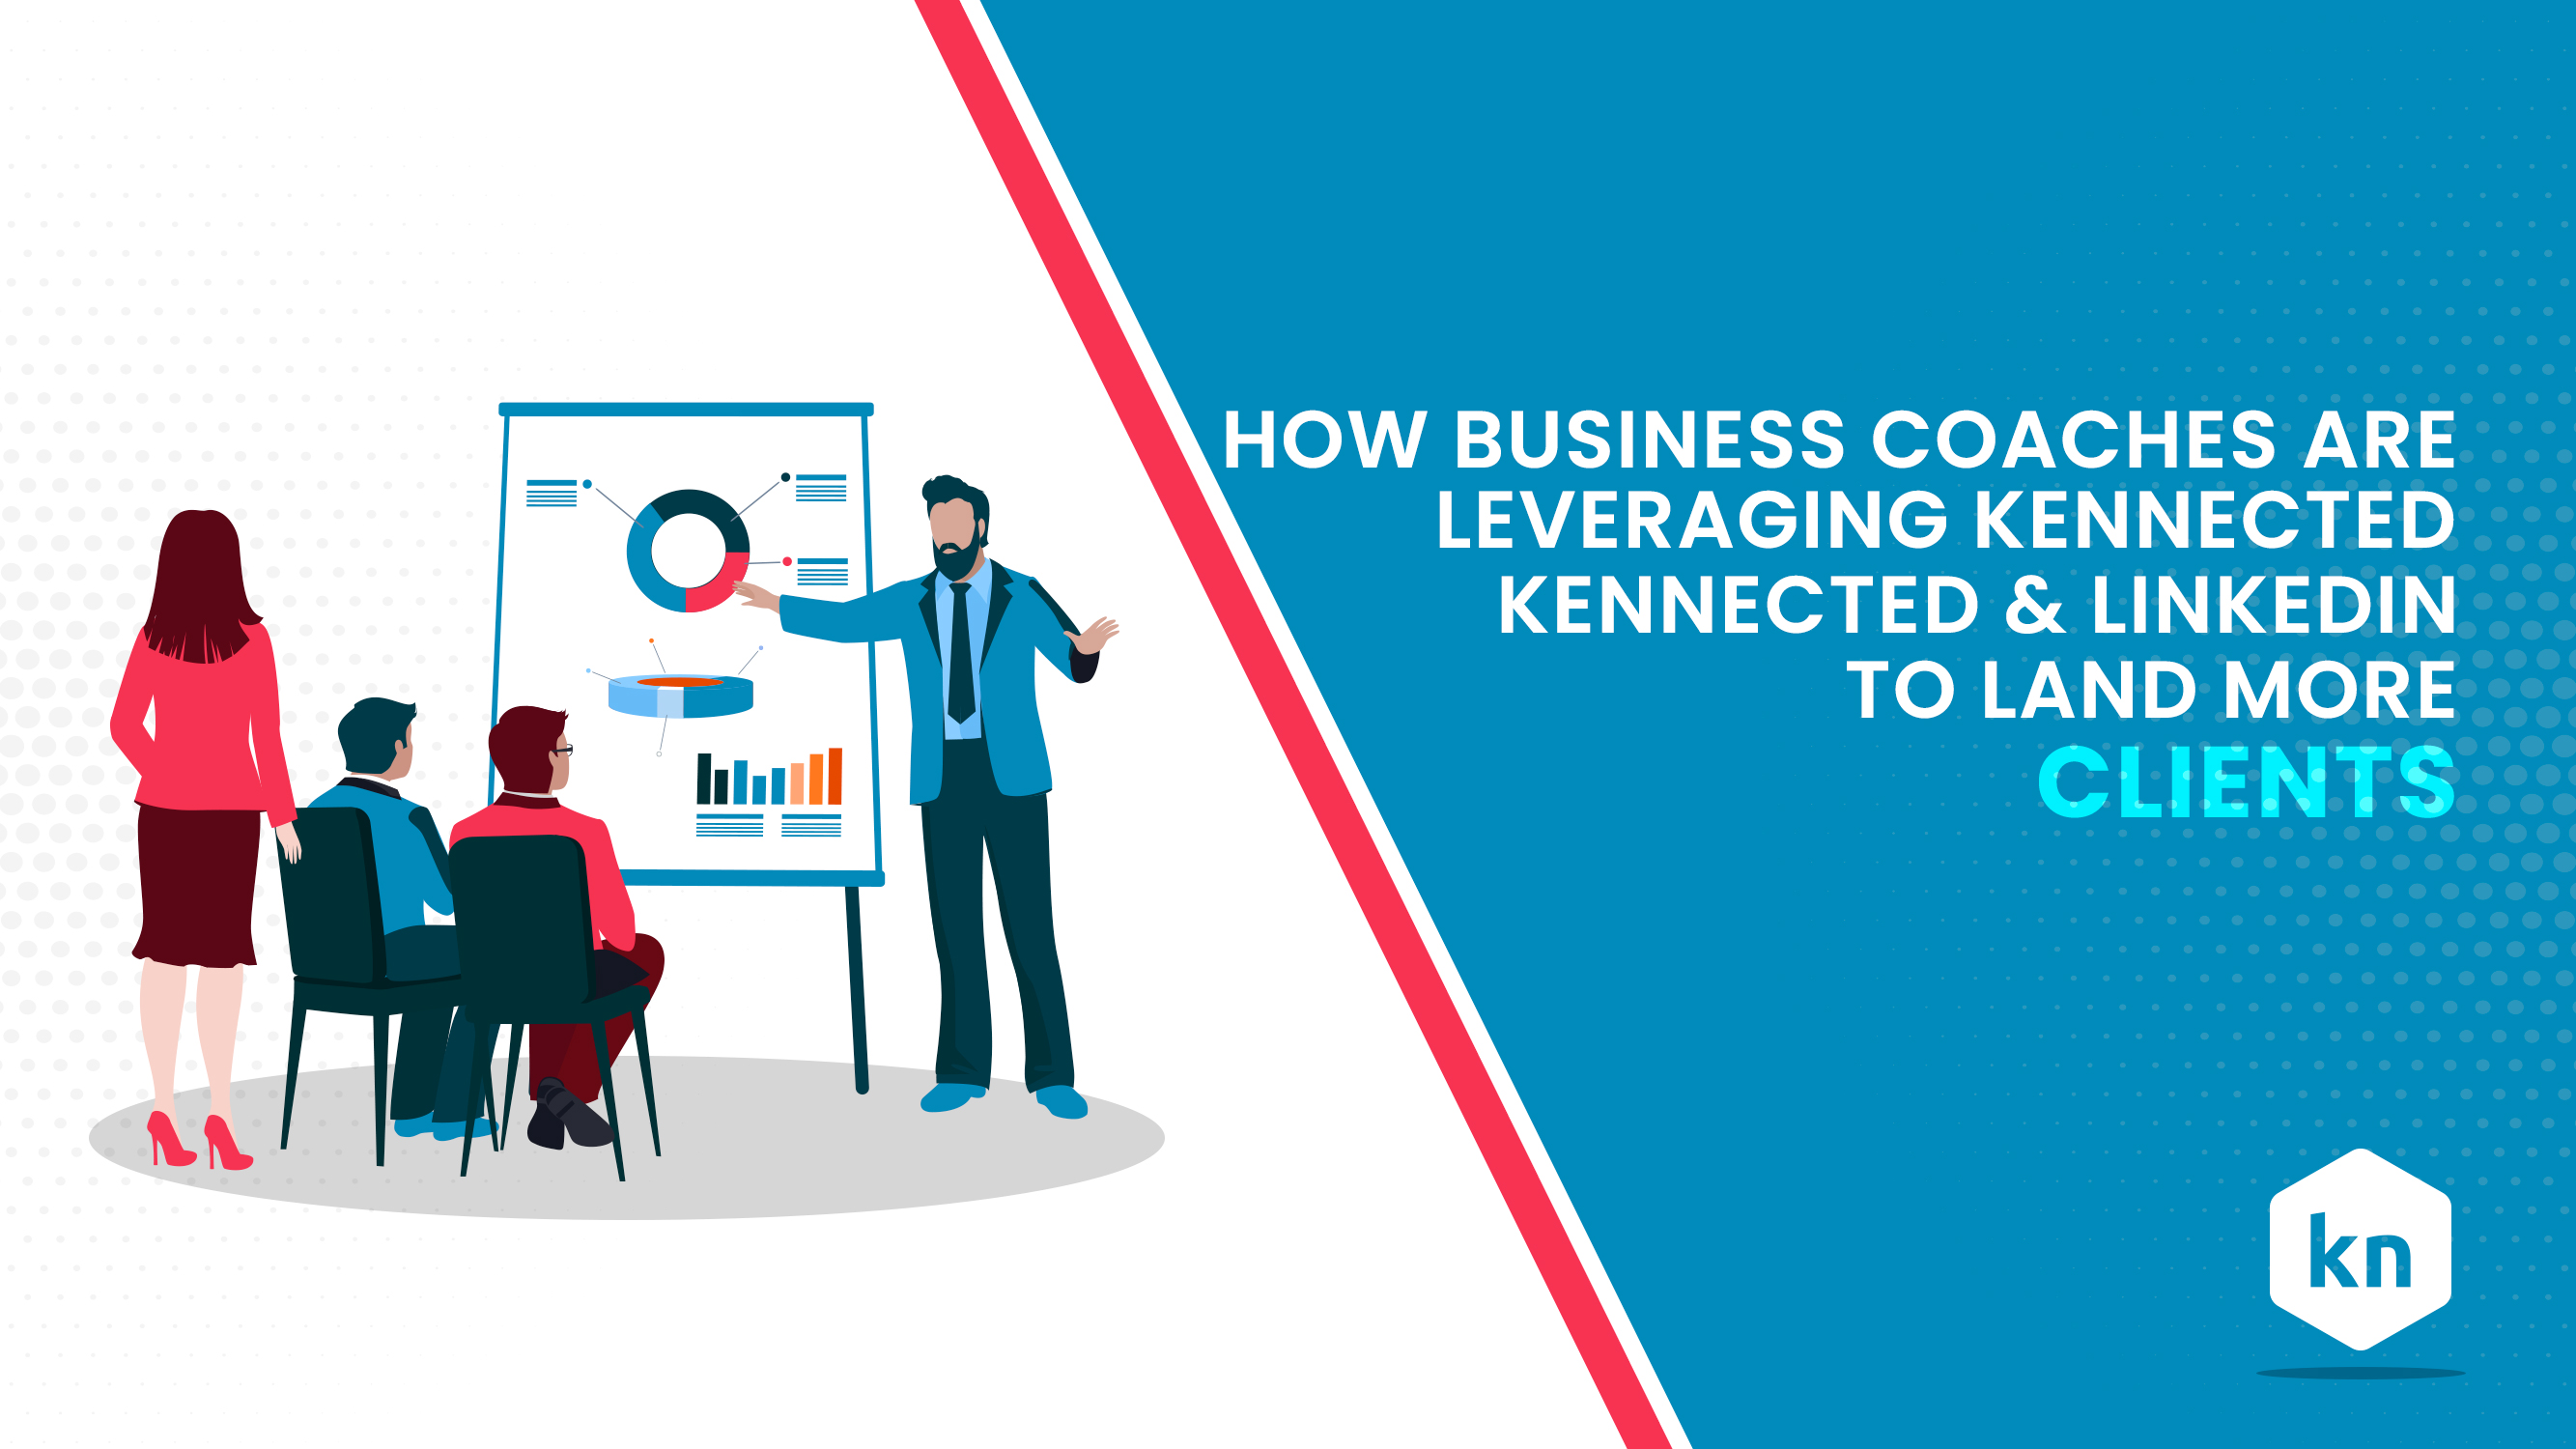 How Business Coaches Are Leveraging Kennected & LinkedIn To Land More Clients